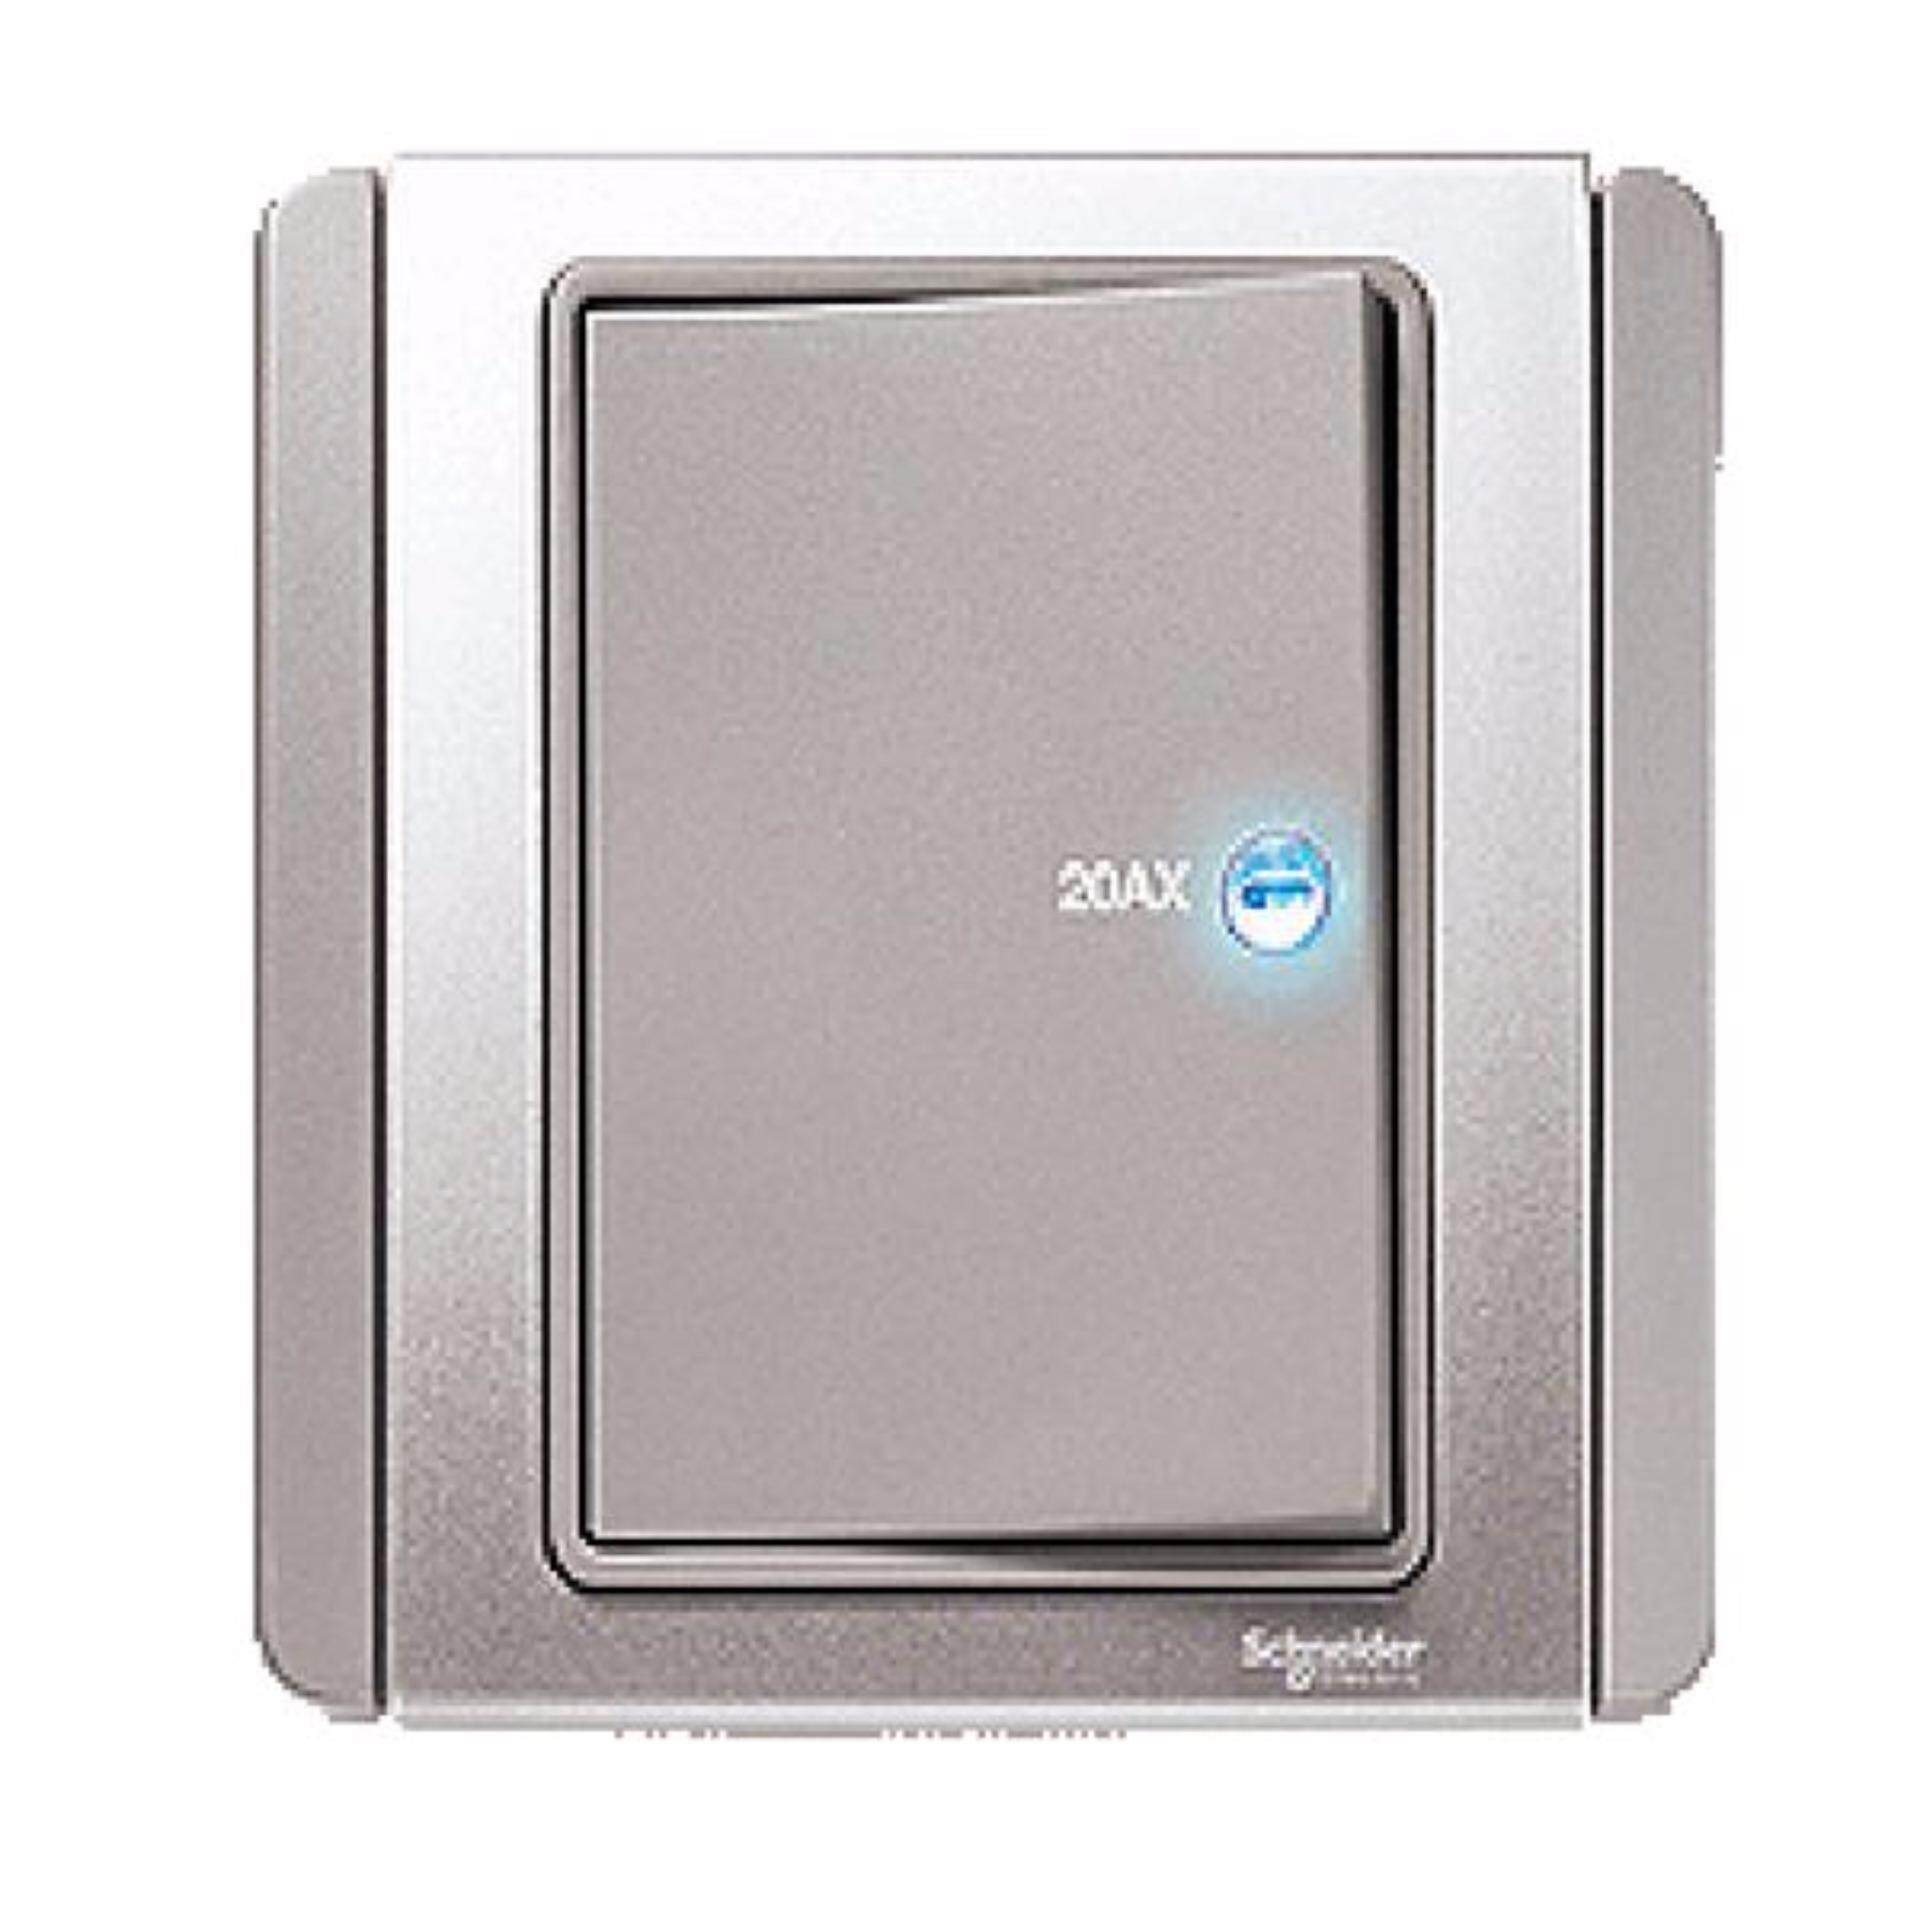 Contemporary Double Pole Switch Image - Electrical System Block ...